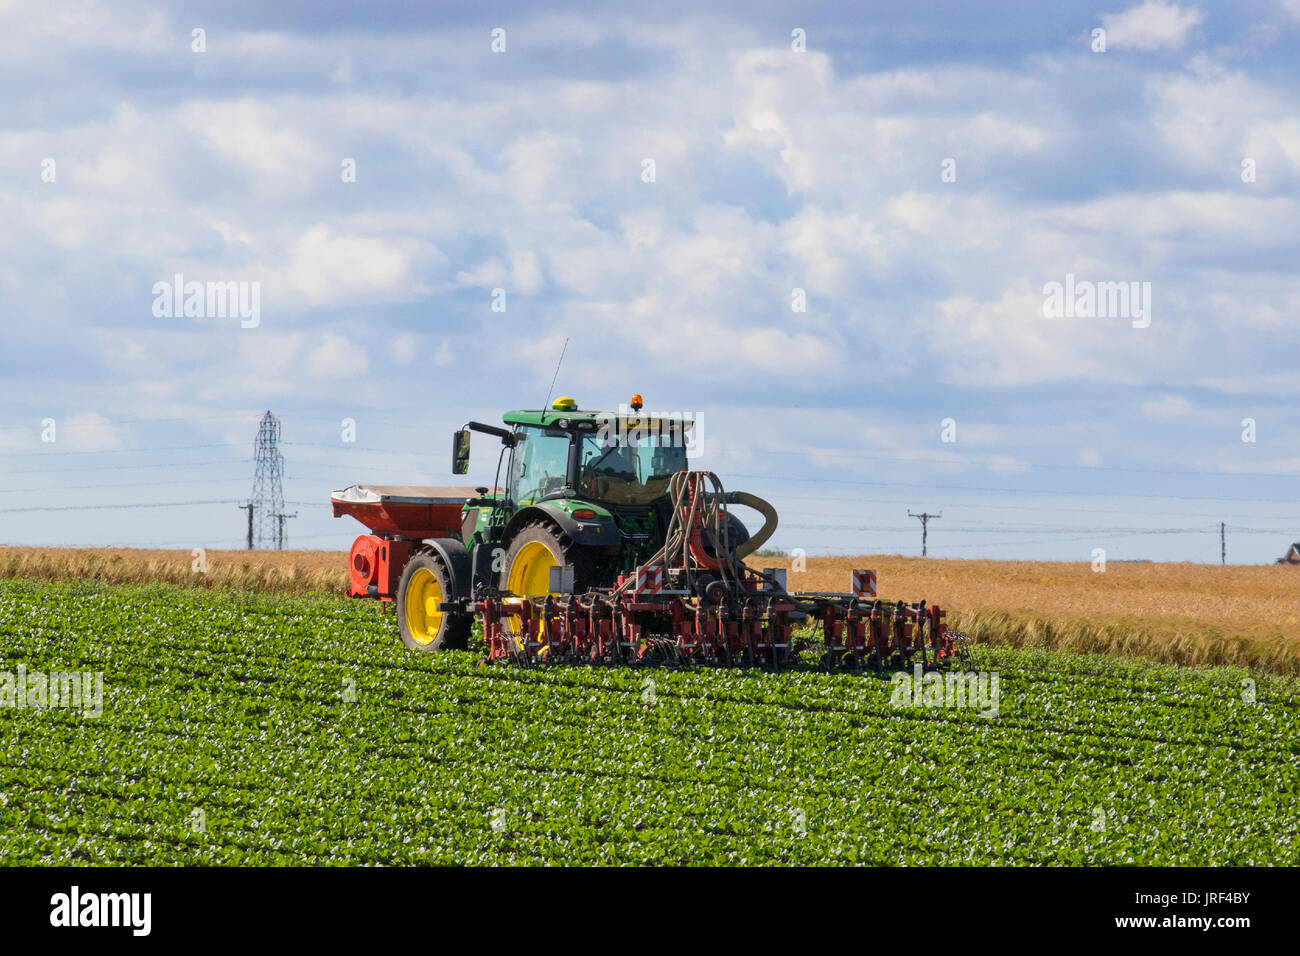 Tarleton, Lancashire, UK Weather. 5th August, 2017. Bright sunny day for farmers take advantage of the drying soils to plant and attend to their crops in the field. The area, known as the Salad Bowl of Lancashire, produces high quality vegetables for the supermarkets of England and is a large employer of EU migrant workers. Credit; MediaWorldImages/AlamyLiveNews. - Stock Image